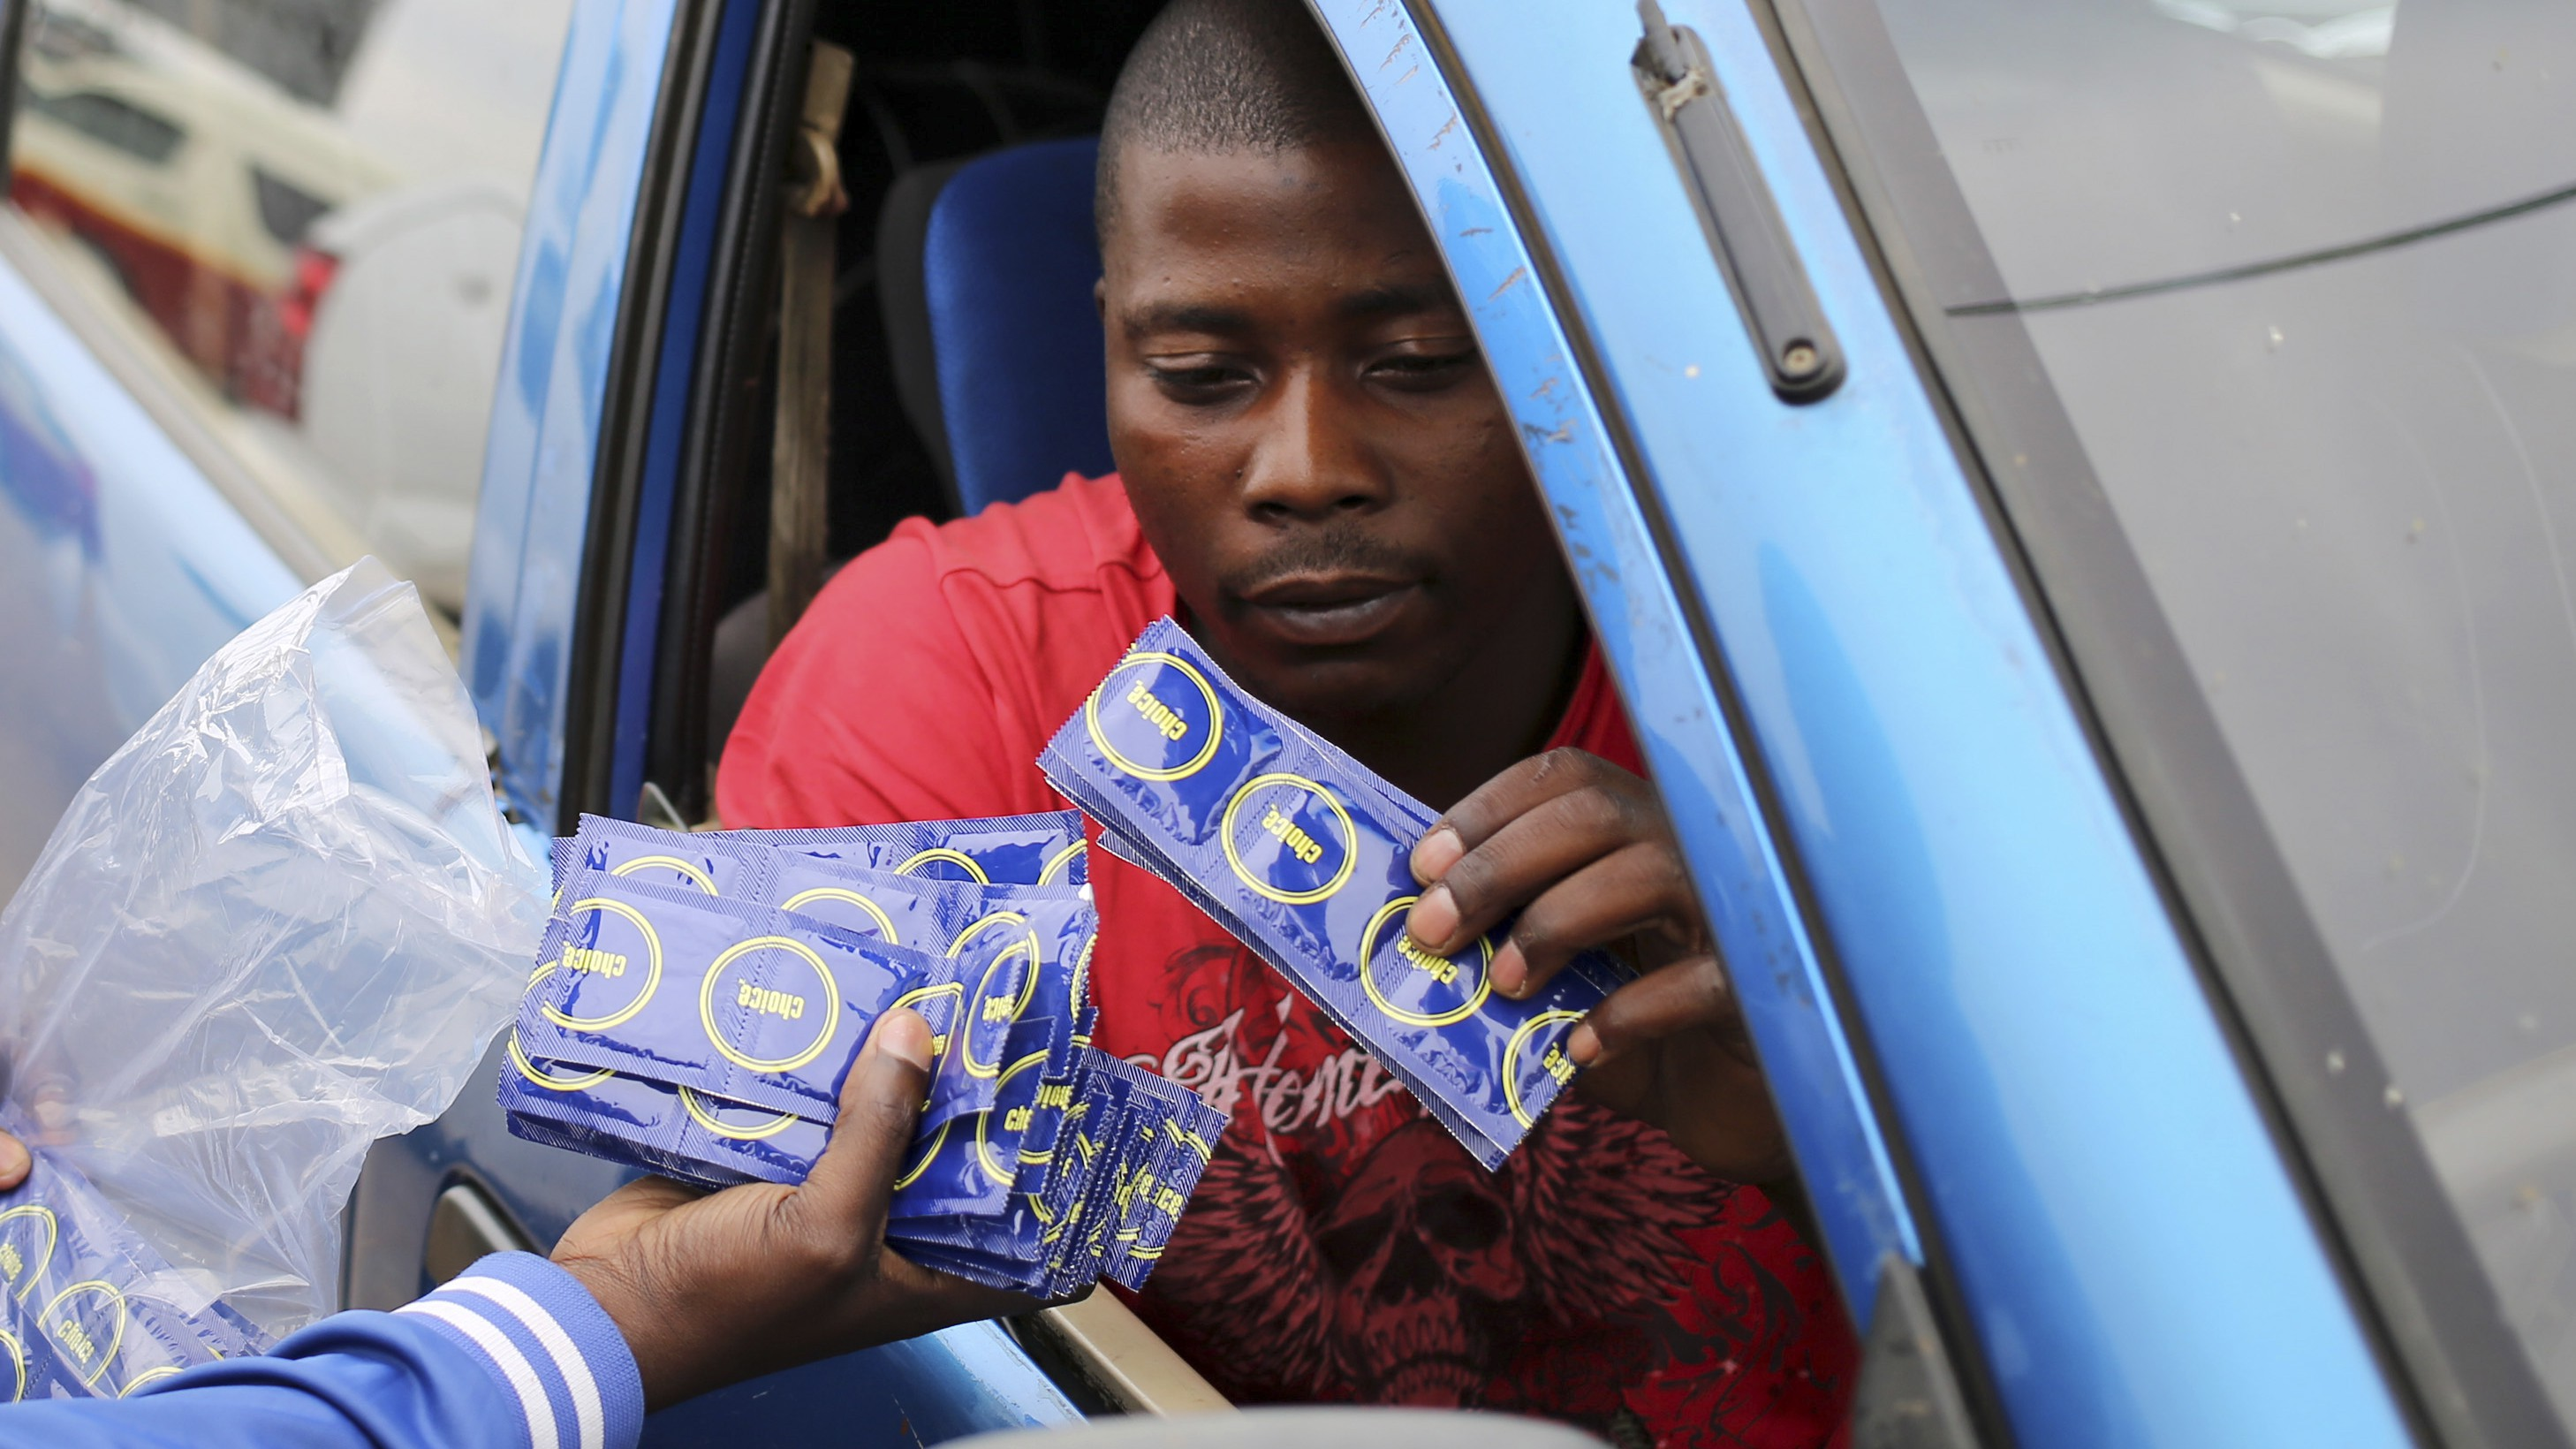 A taxi driver is given condoms by a member of the Treatment Action Campaign (TAC) as they campaign for safe sex in Daveyton, outside Johannesburg November 27, 2014. The activists on the streets of Daveyton want to educate people about how HIV is spread and most importantly, how it can be prevented. December 1 is World AIDS Day. Picture taken November 27. REUTERS/Siphiwe Sibeko (SOUTH AFRICA - Tags: HEALTH) - RTR4G665